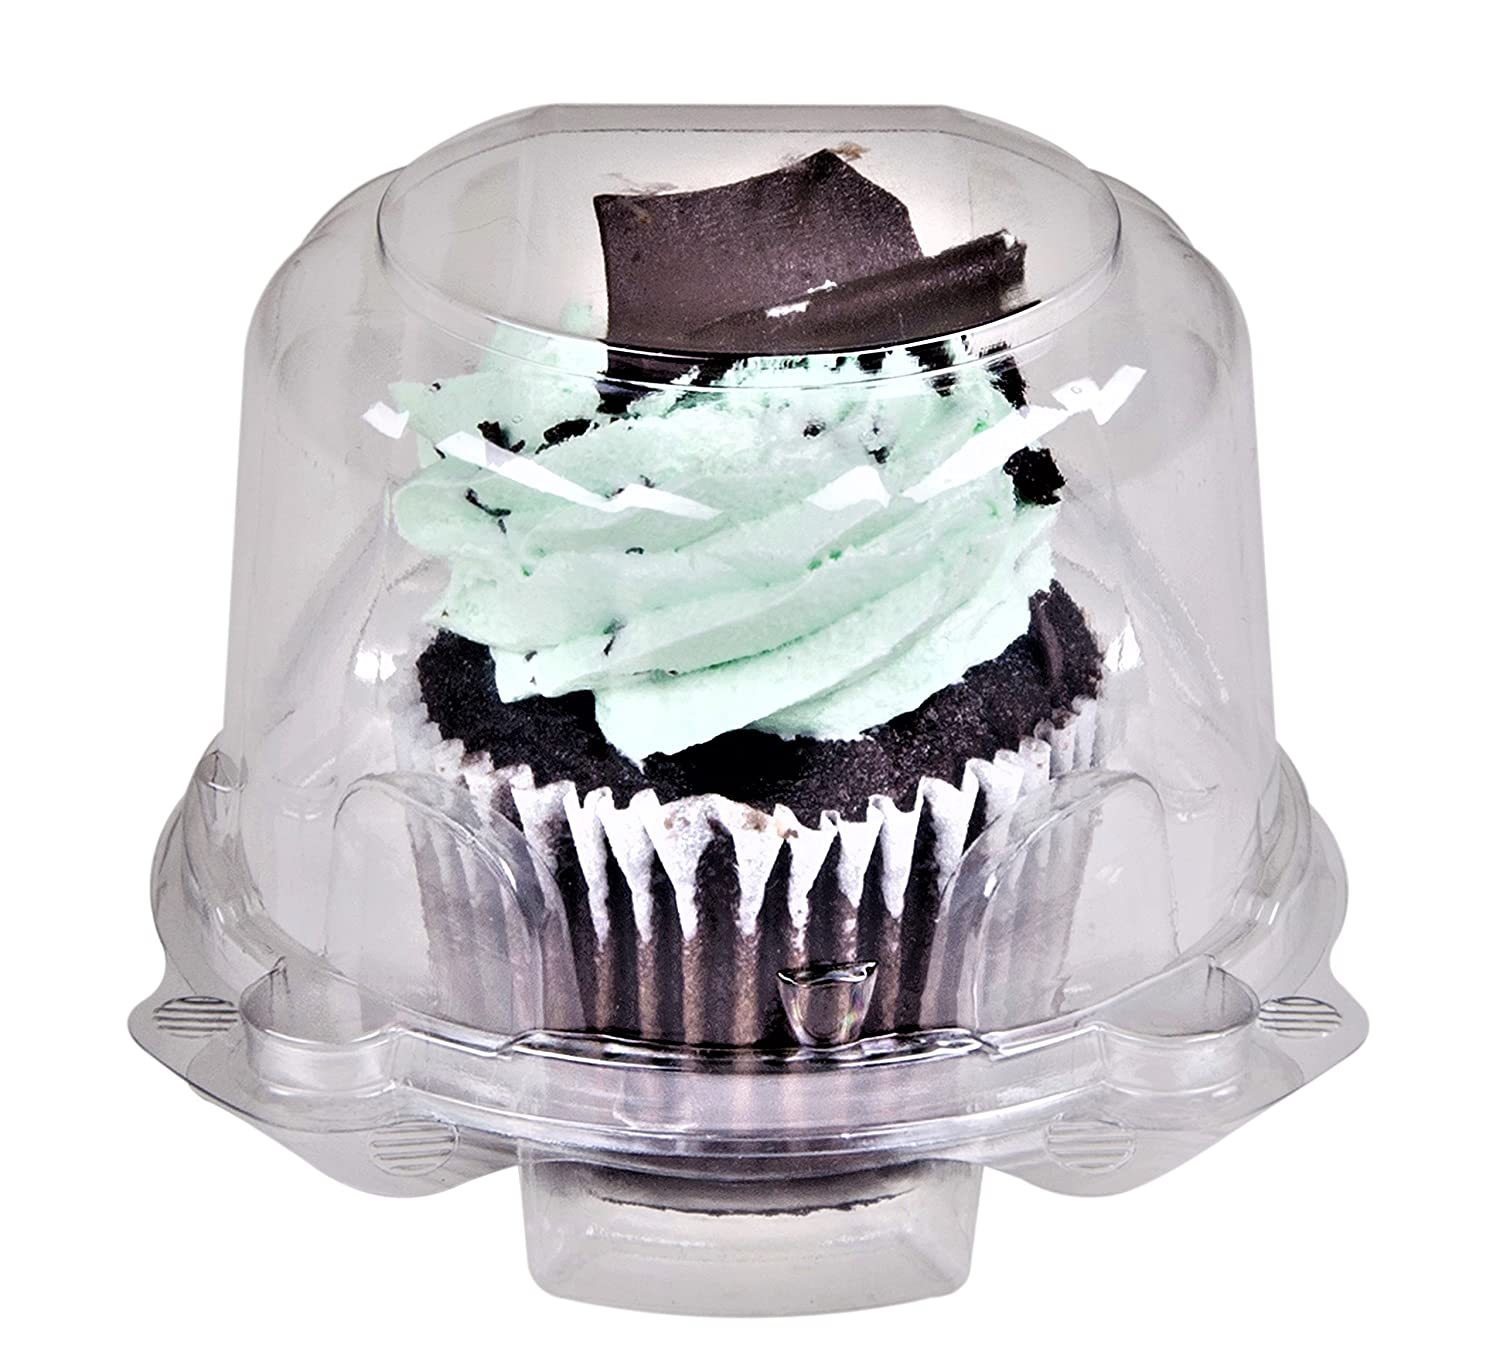 Green Direct Stackable Cupcake Boxes - Clear Plastic Dome Carrier - Standard size Individual Cupcake Holder - Single Compartment Containers BPA Free Pack of 50